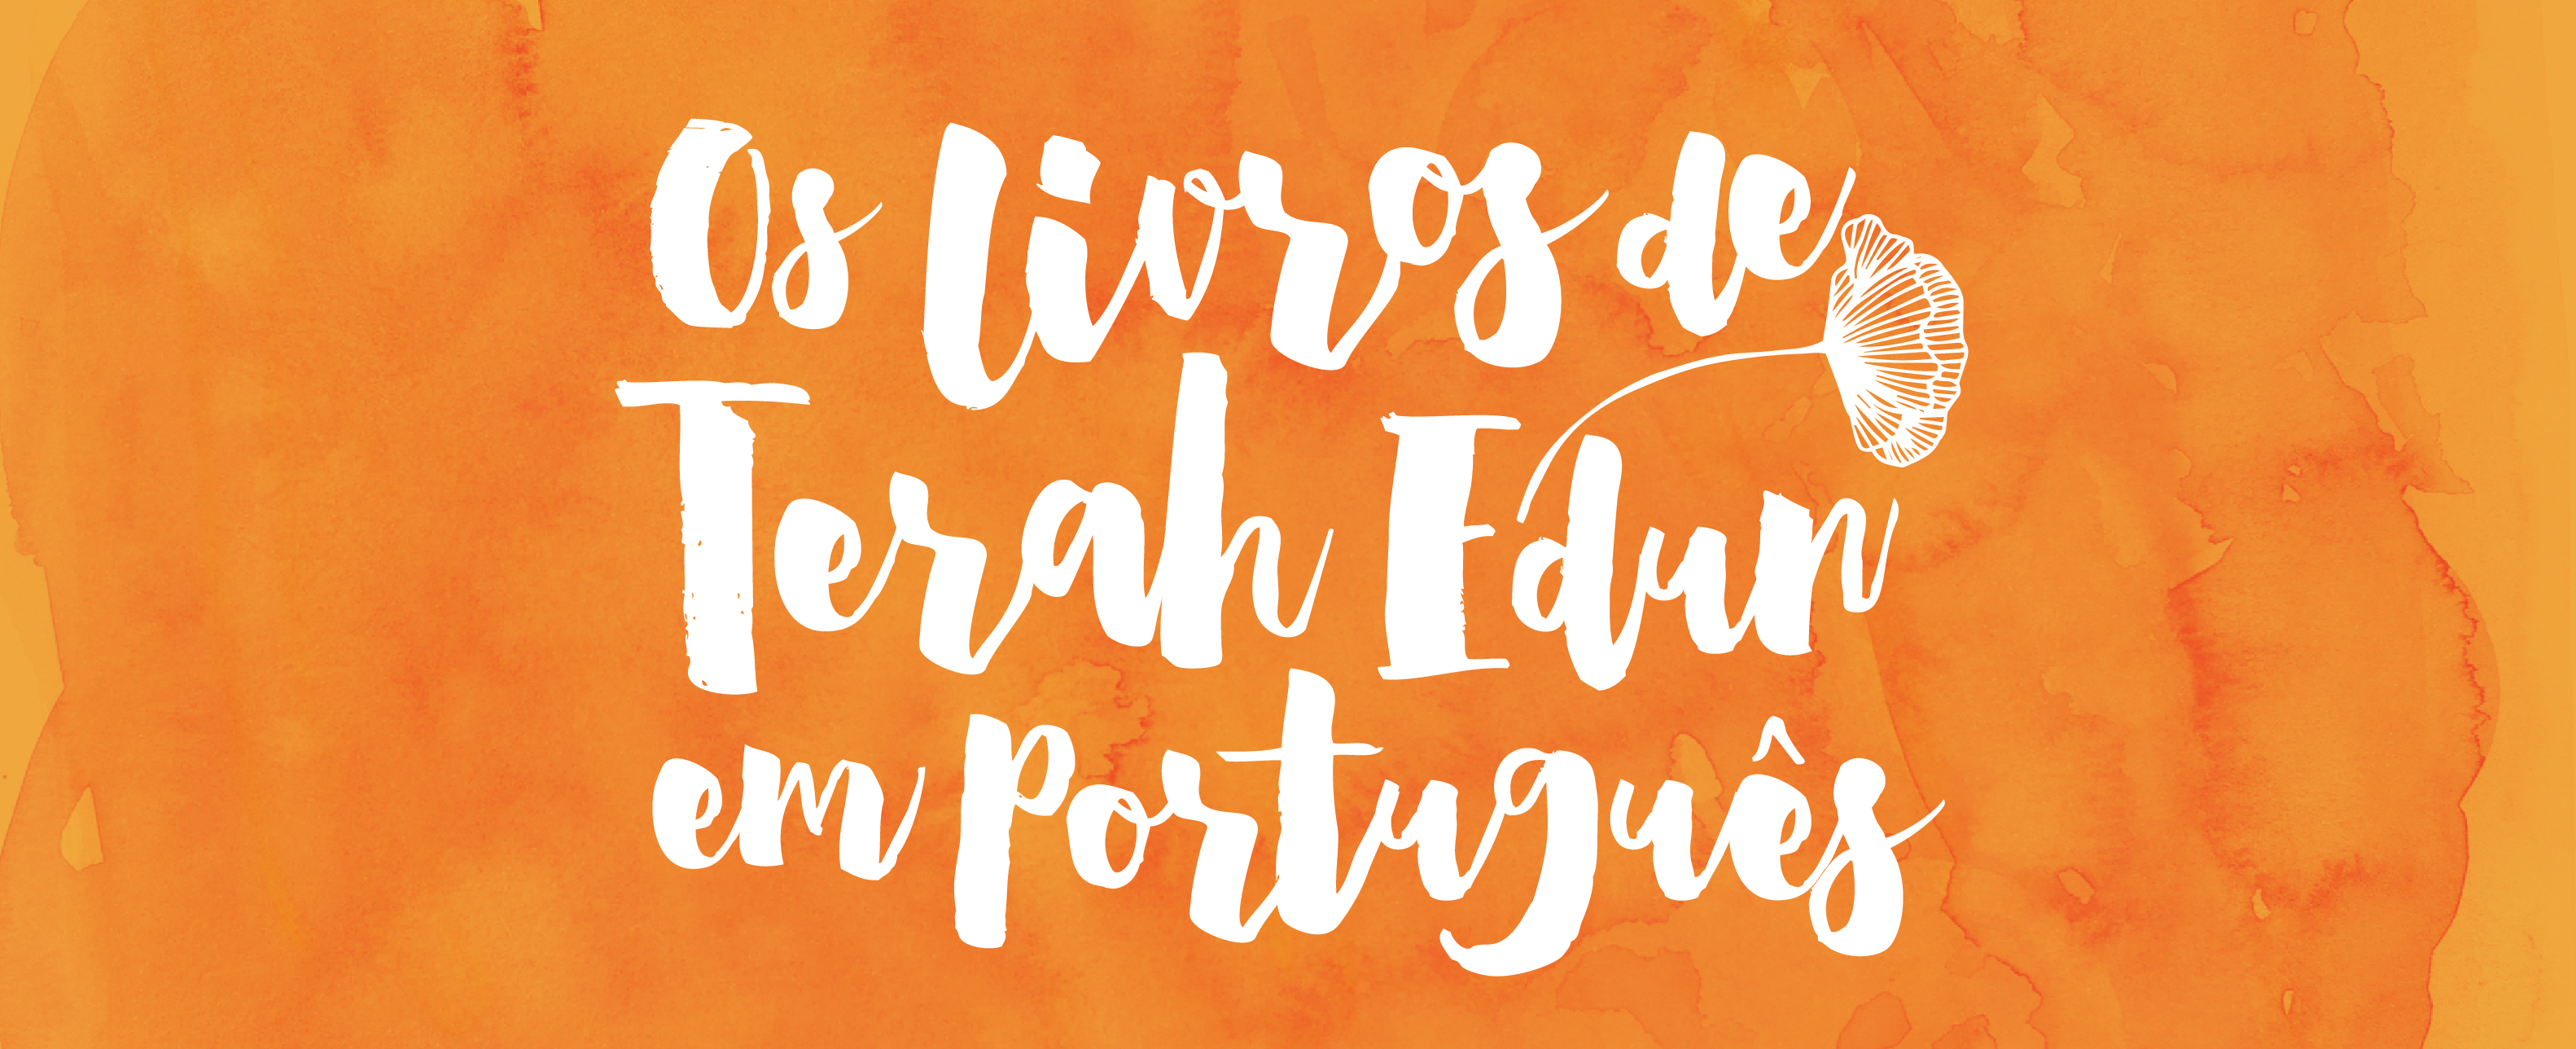 Portuguese Header for Site